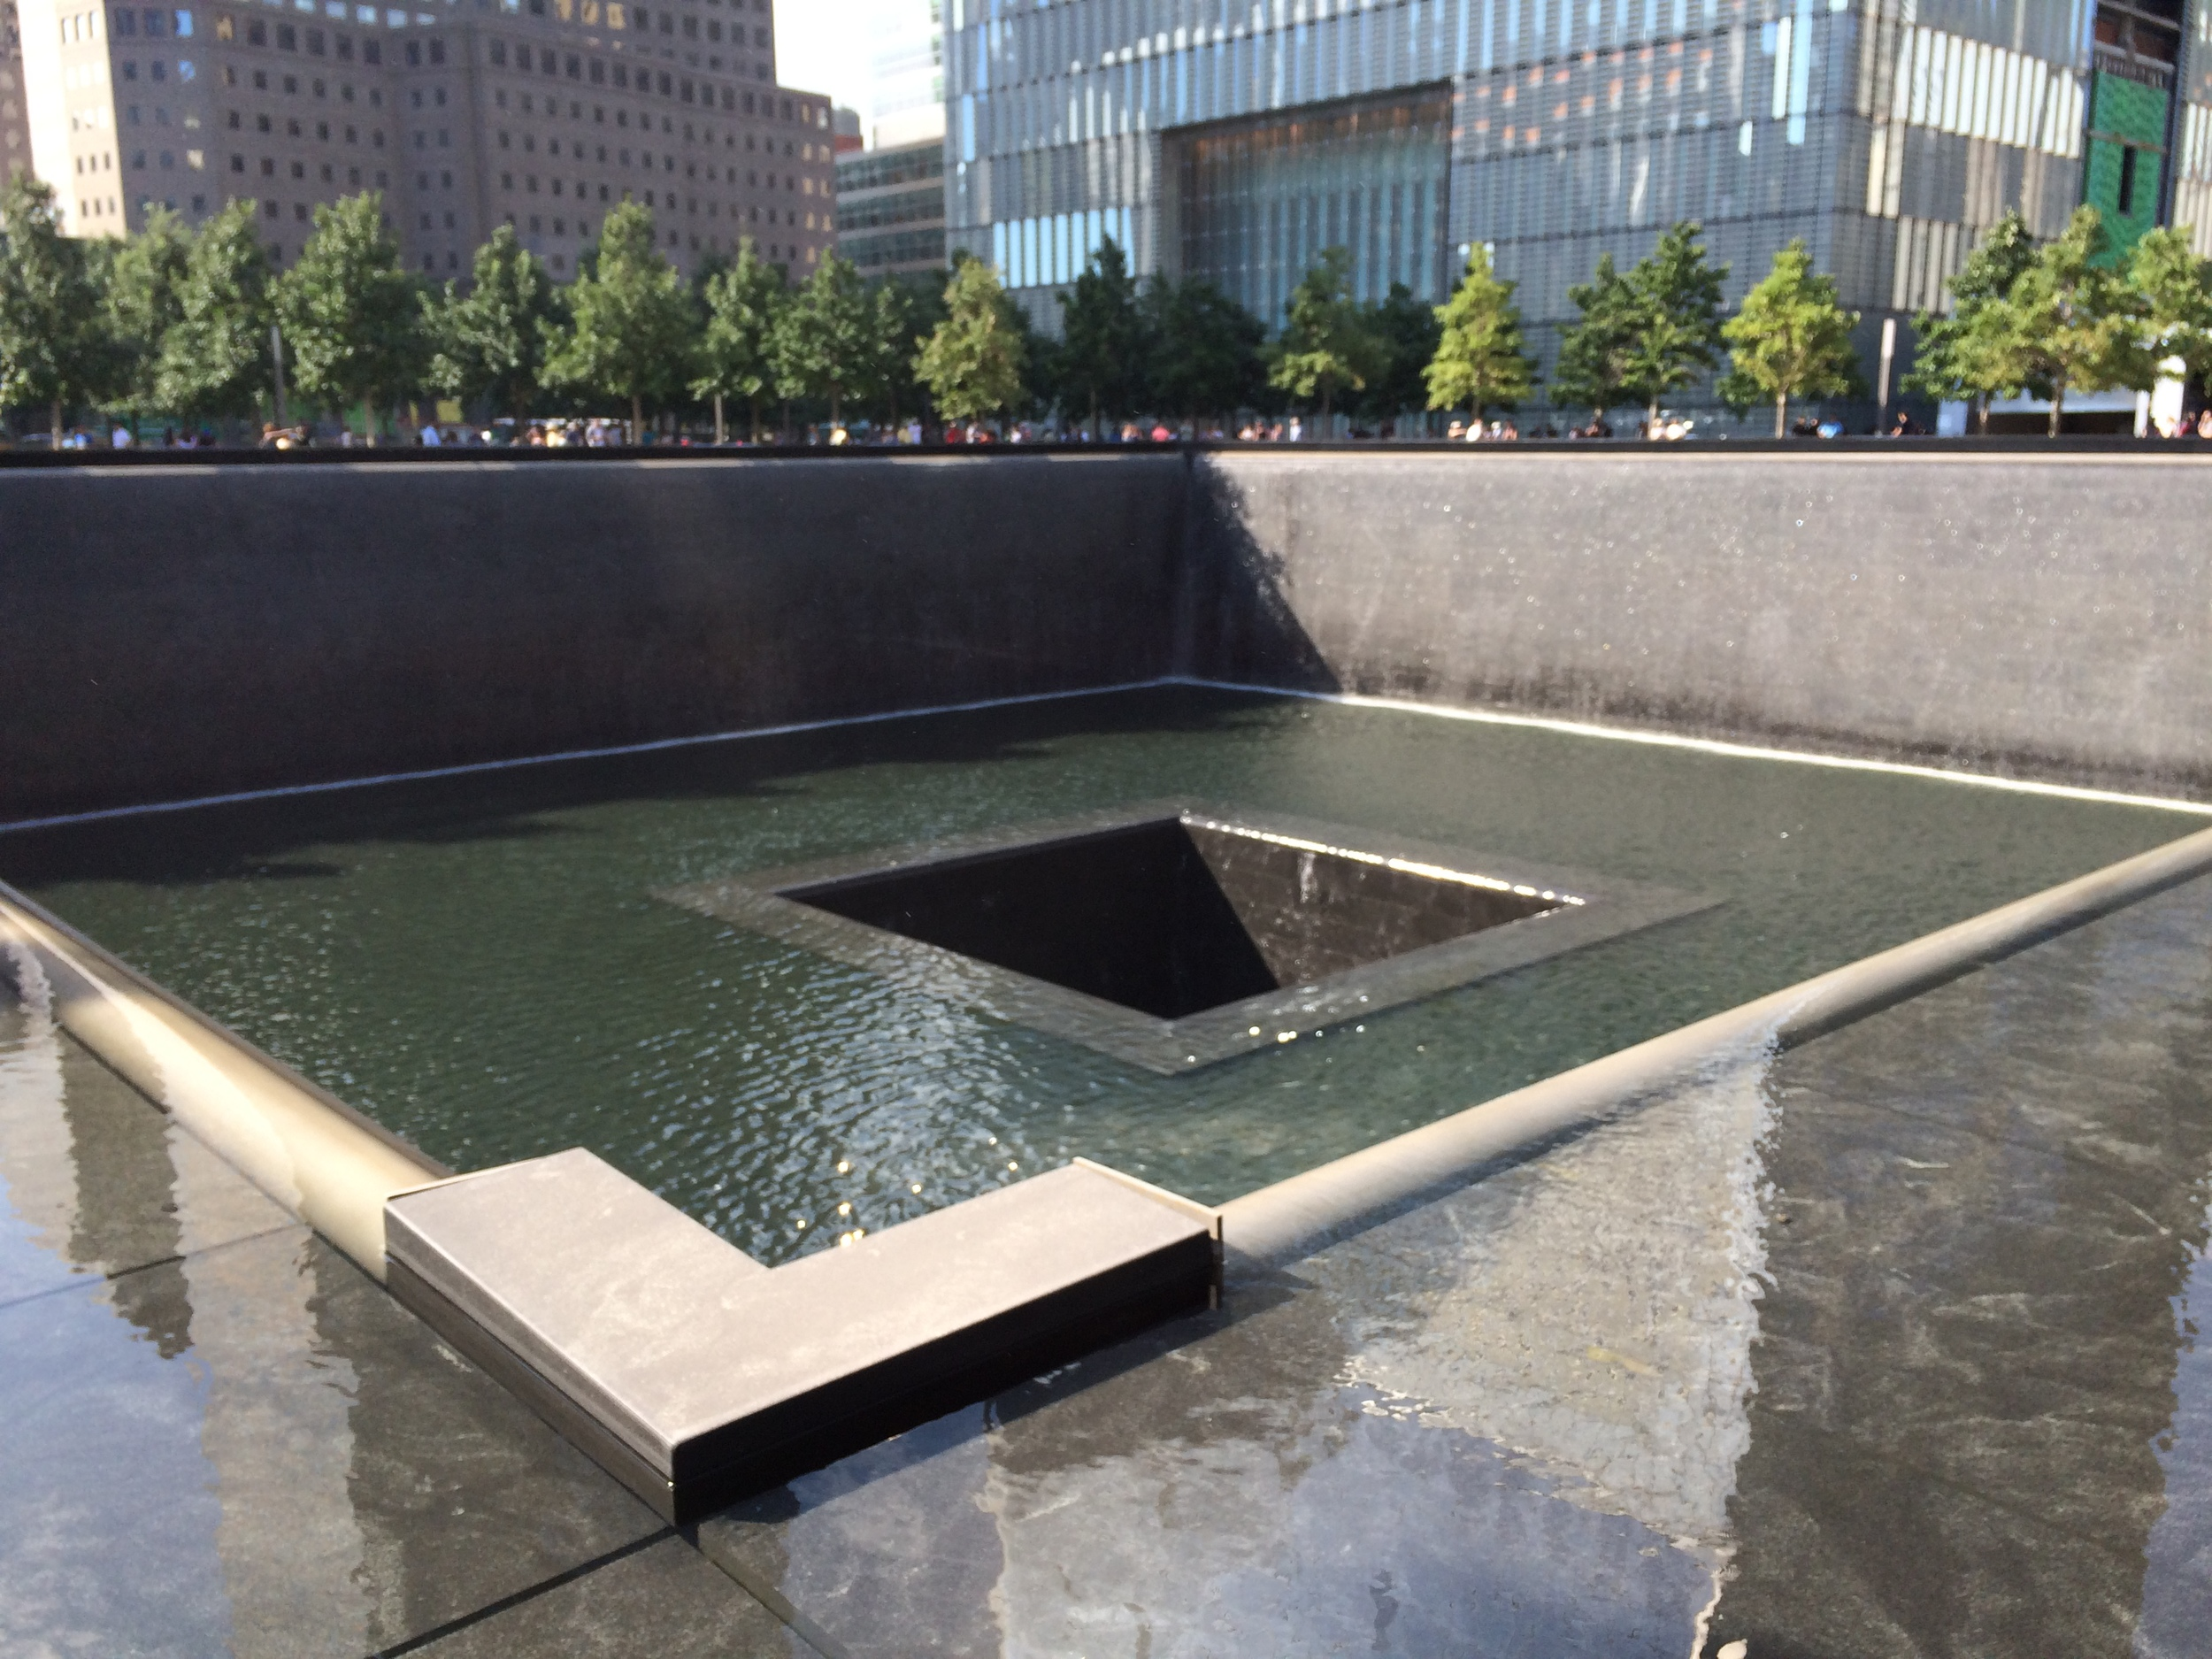 One of the 9/11 memorial fountains. Pretty surreal, I must say. Definitely worth seeing. Makes it feel real.